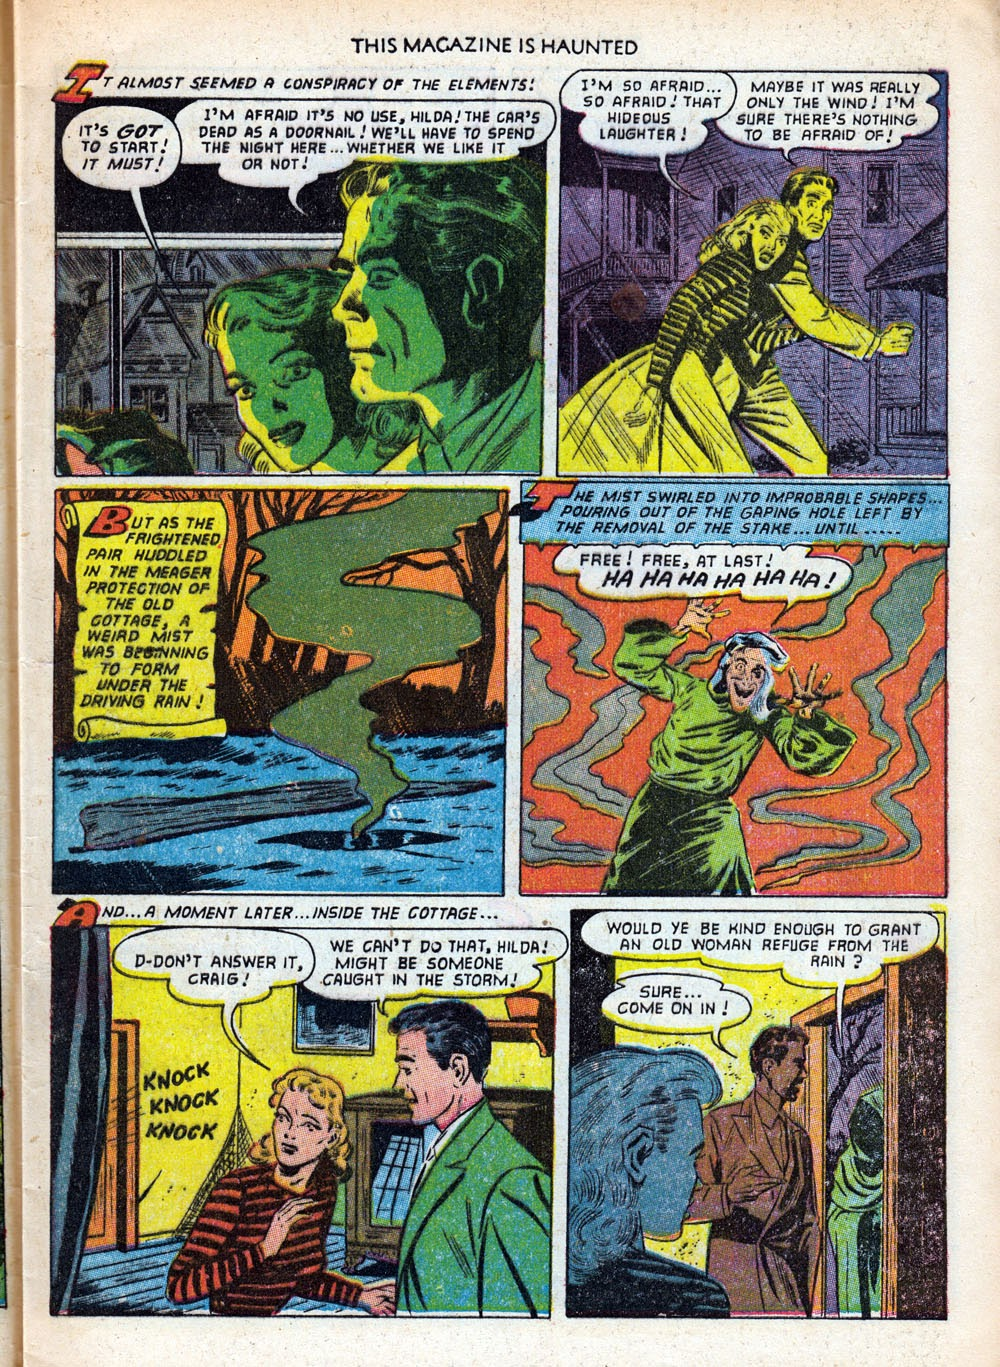 Read online This Magazine Is Haunted comic -  Issue #9 - 9